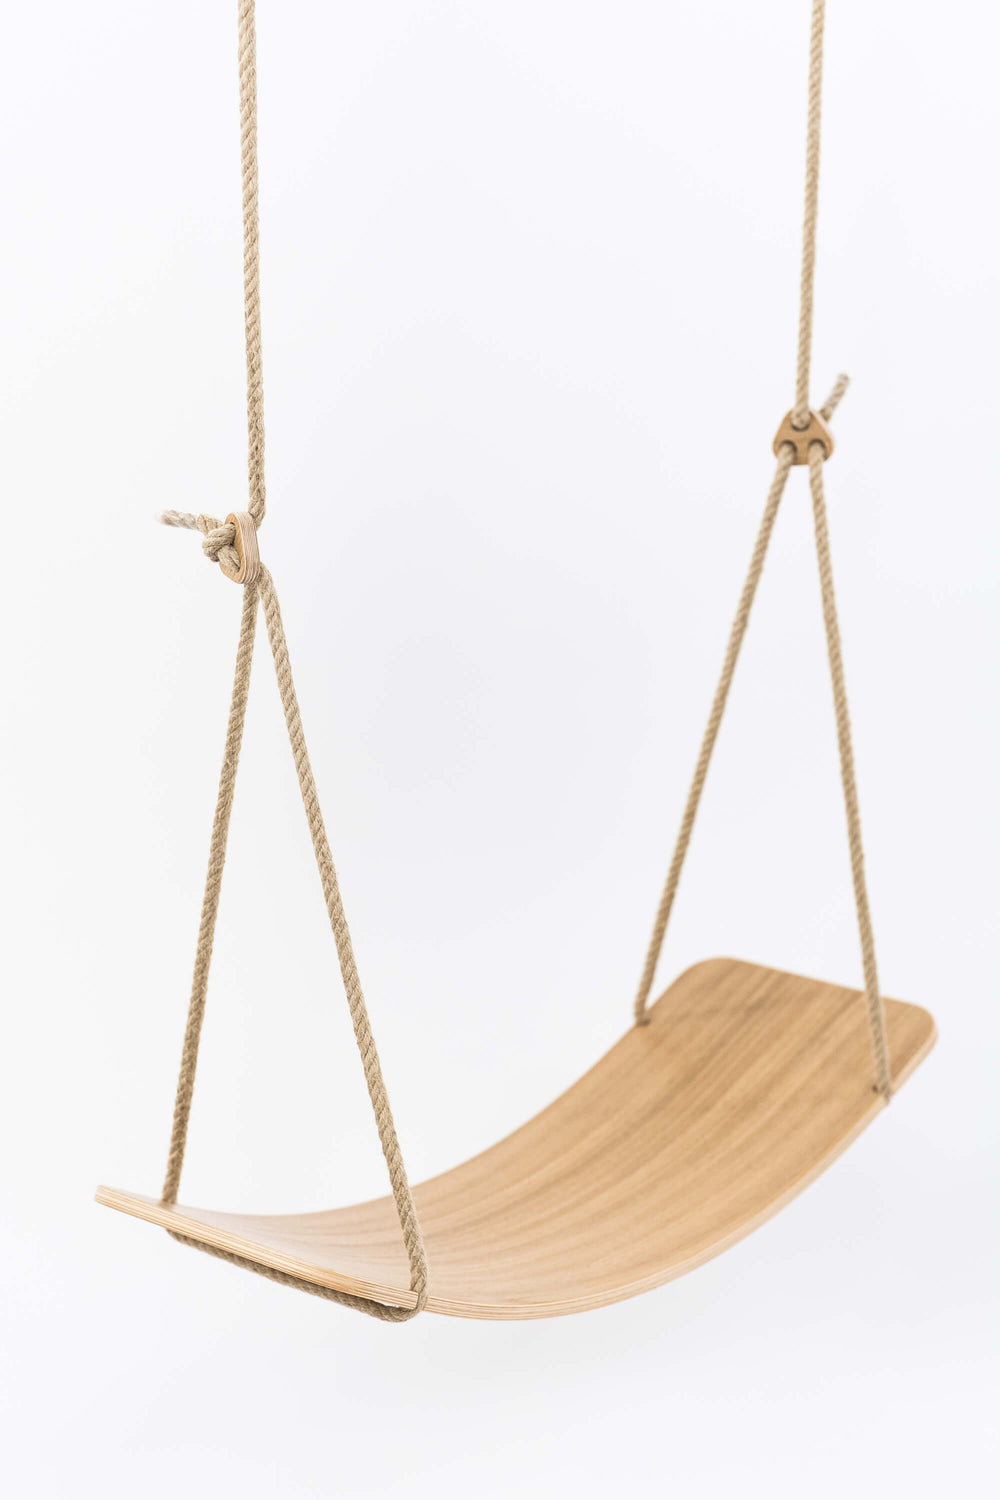 Wooden Balance Board Swing